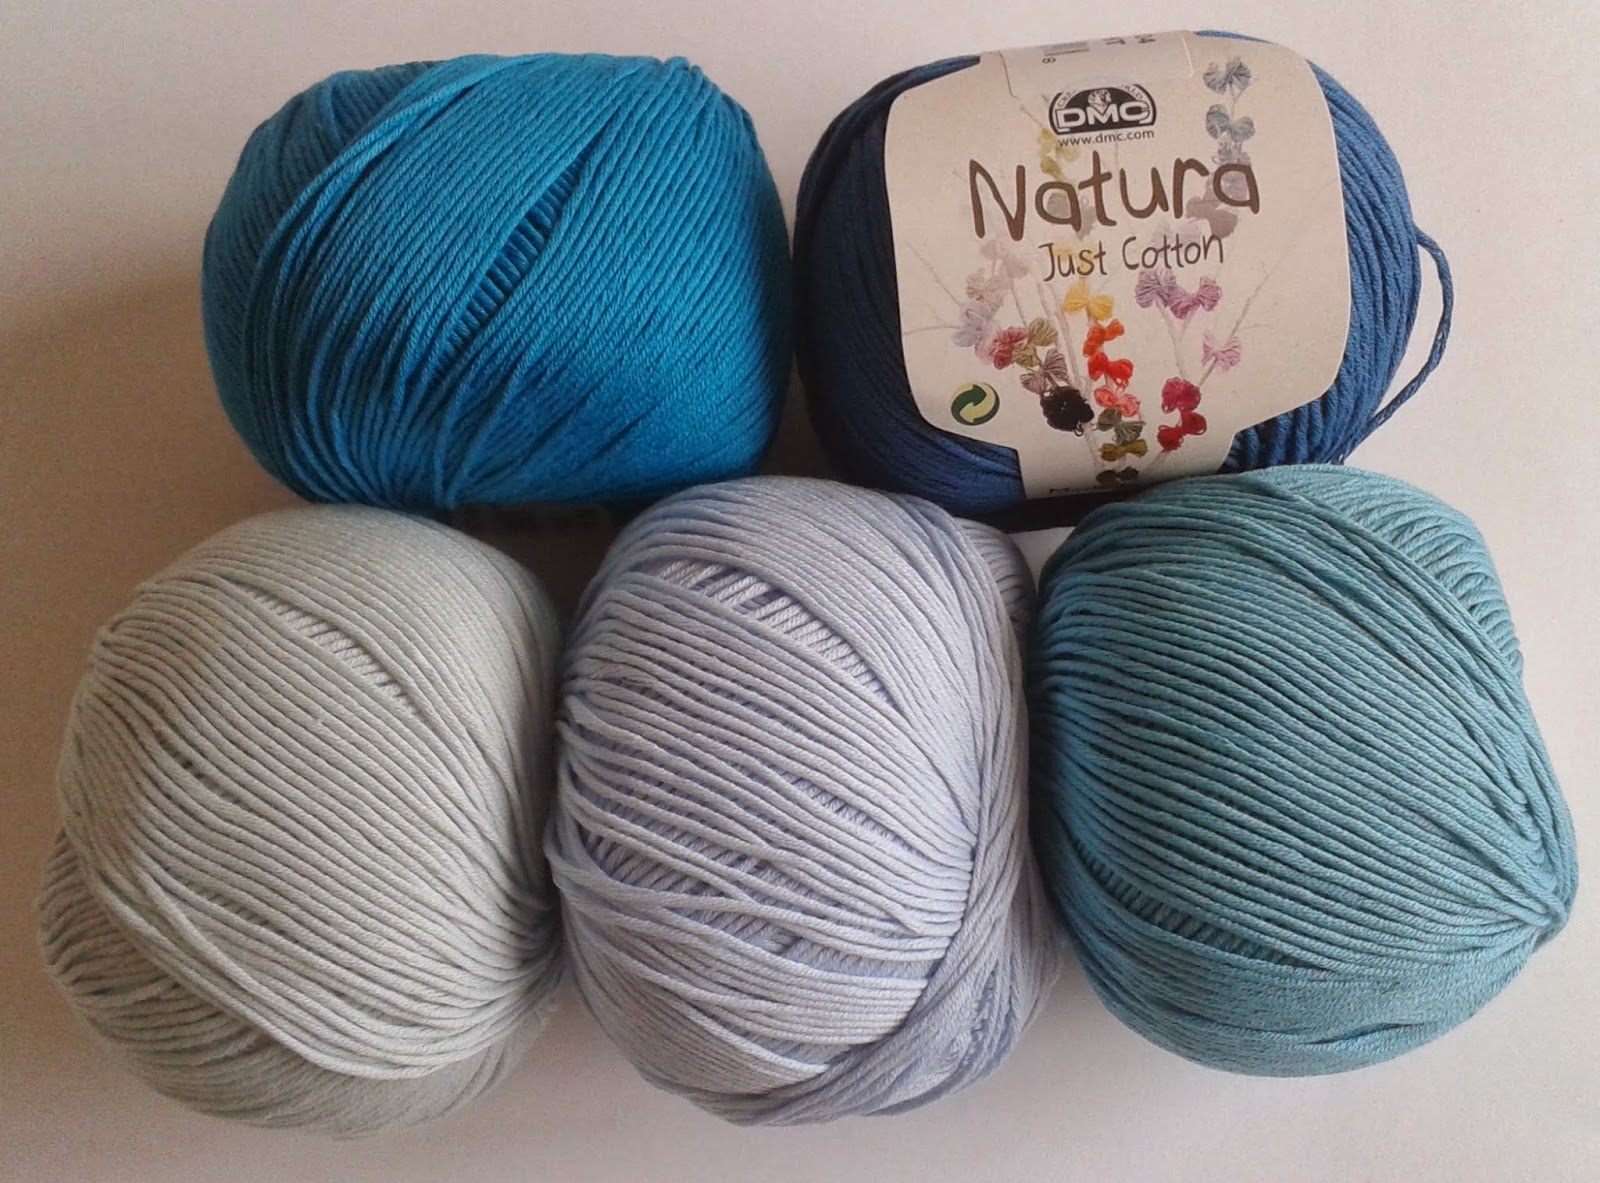 Natura Just Cotton - Country Maison Shop Etsy